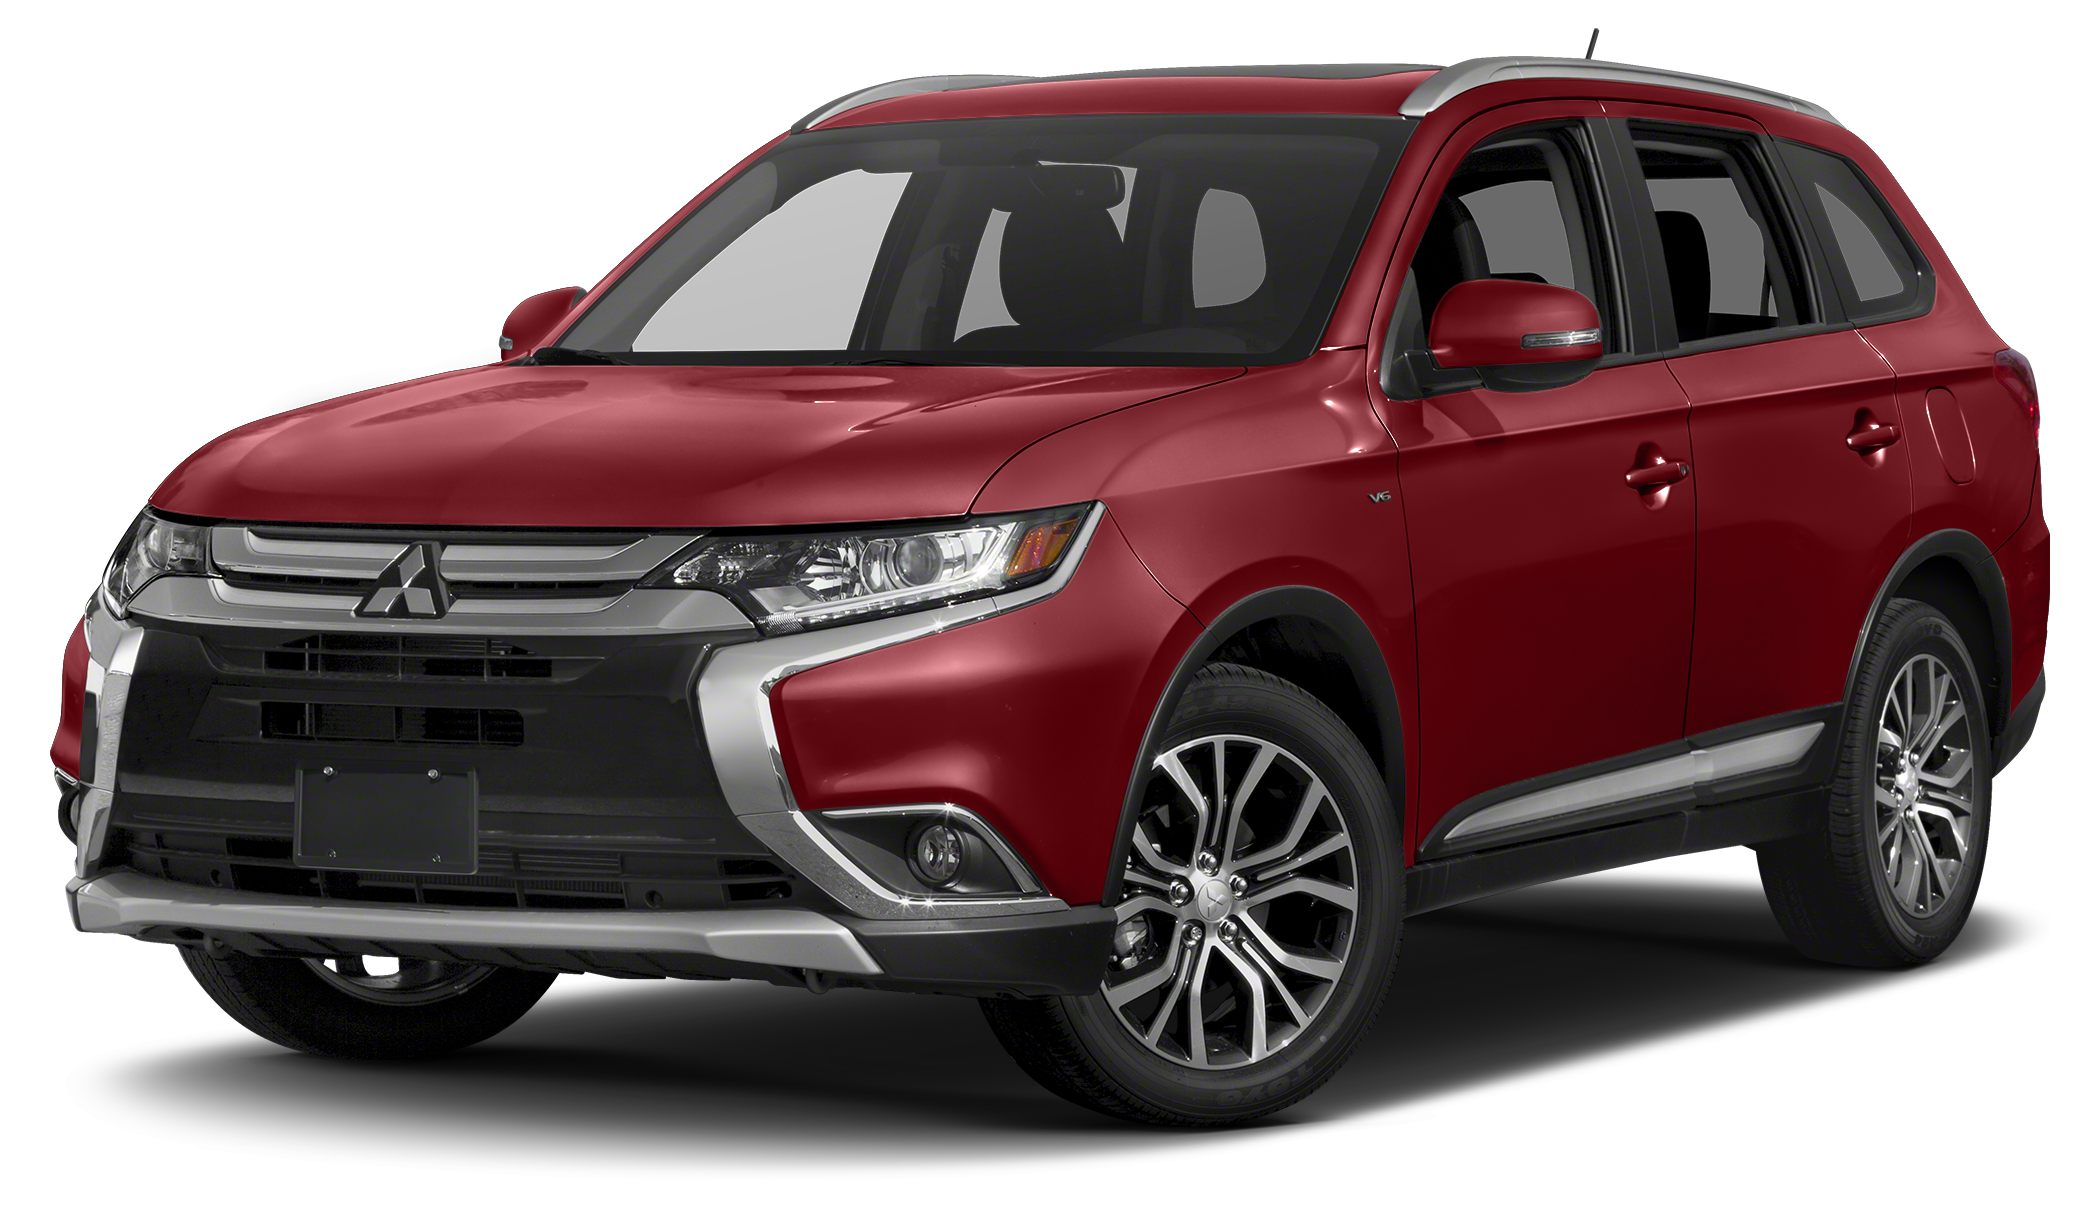 2016 Mitsubishi Outlander SEL Miles 0Color Rally Red Metallic Stock M16022 VIN JA4AD3A30GZ01